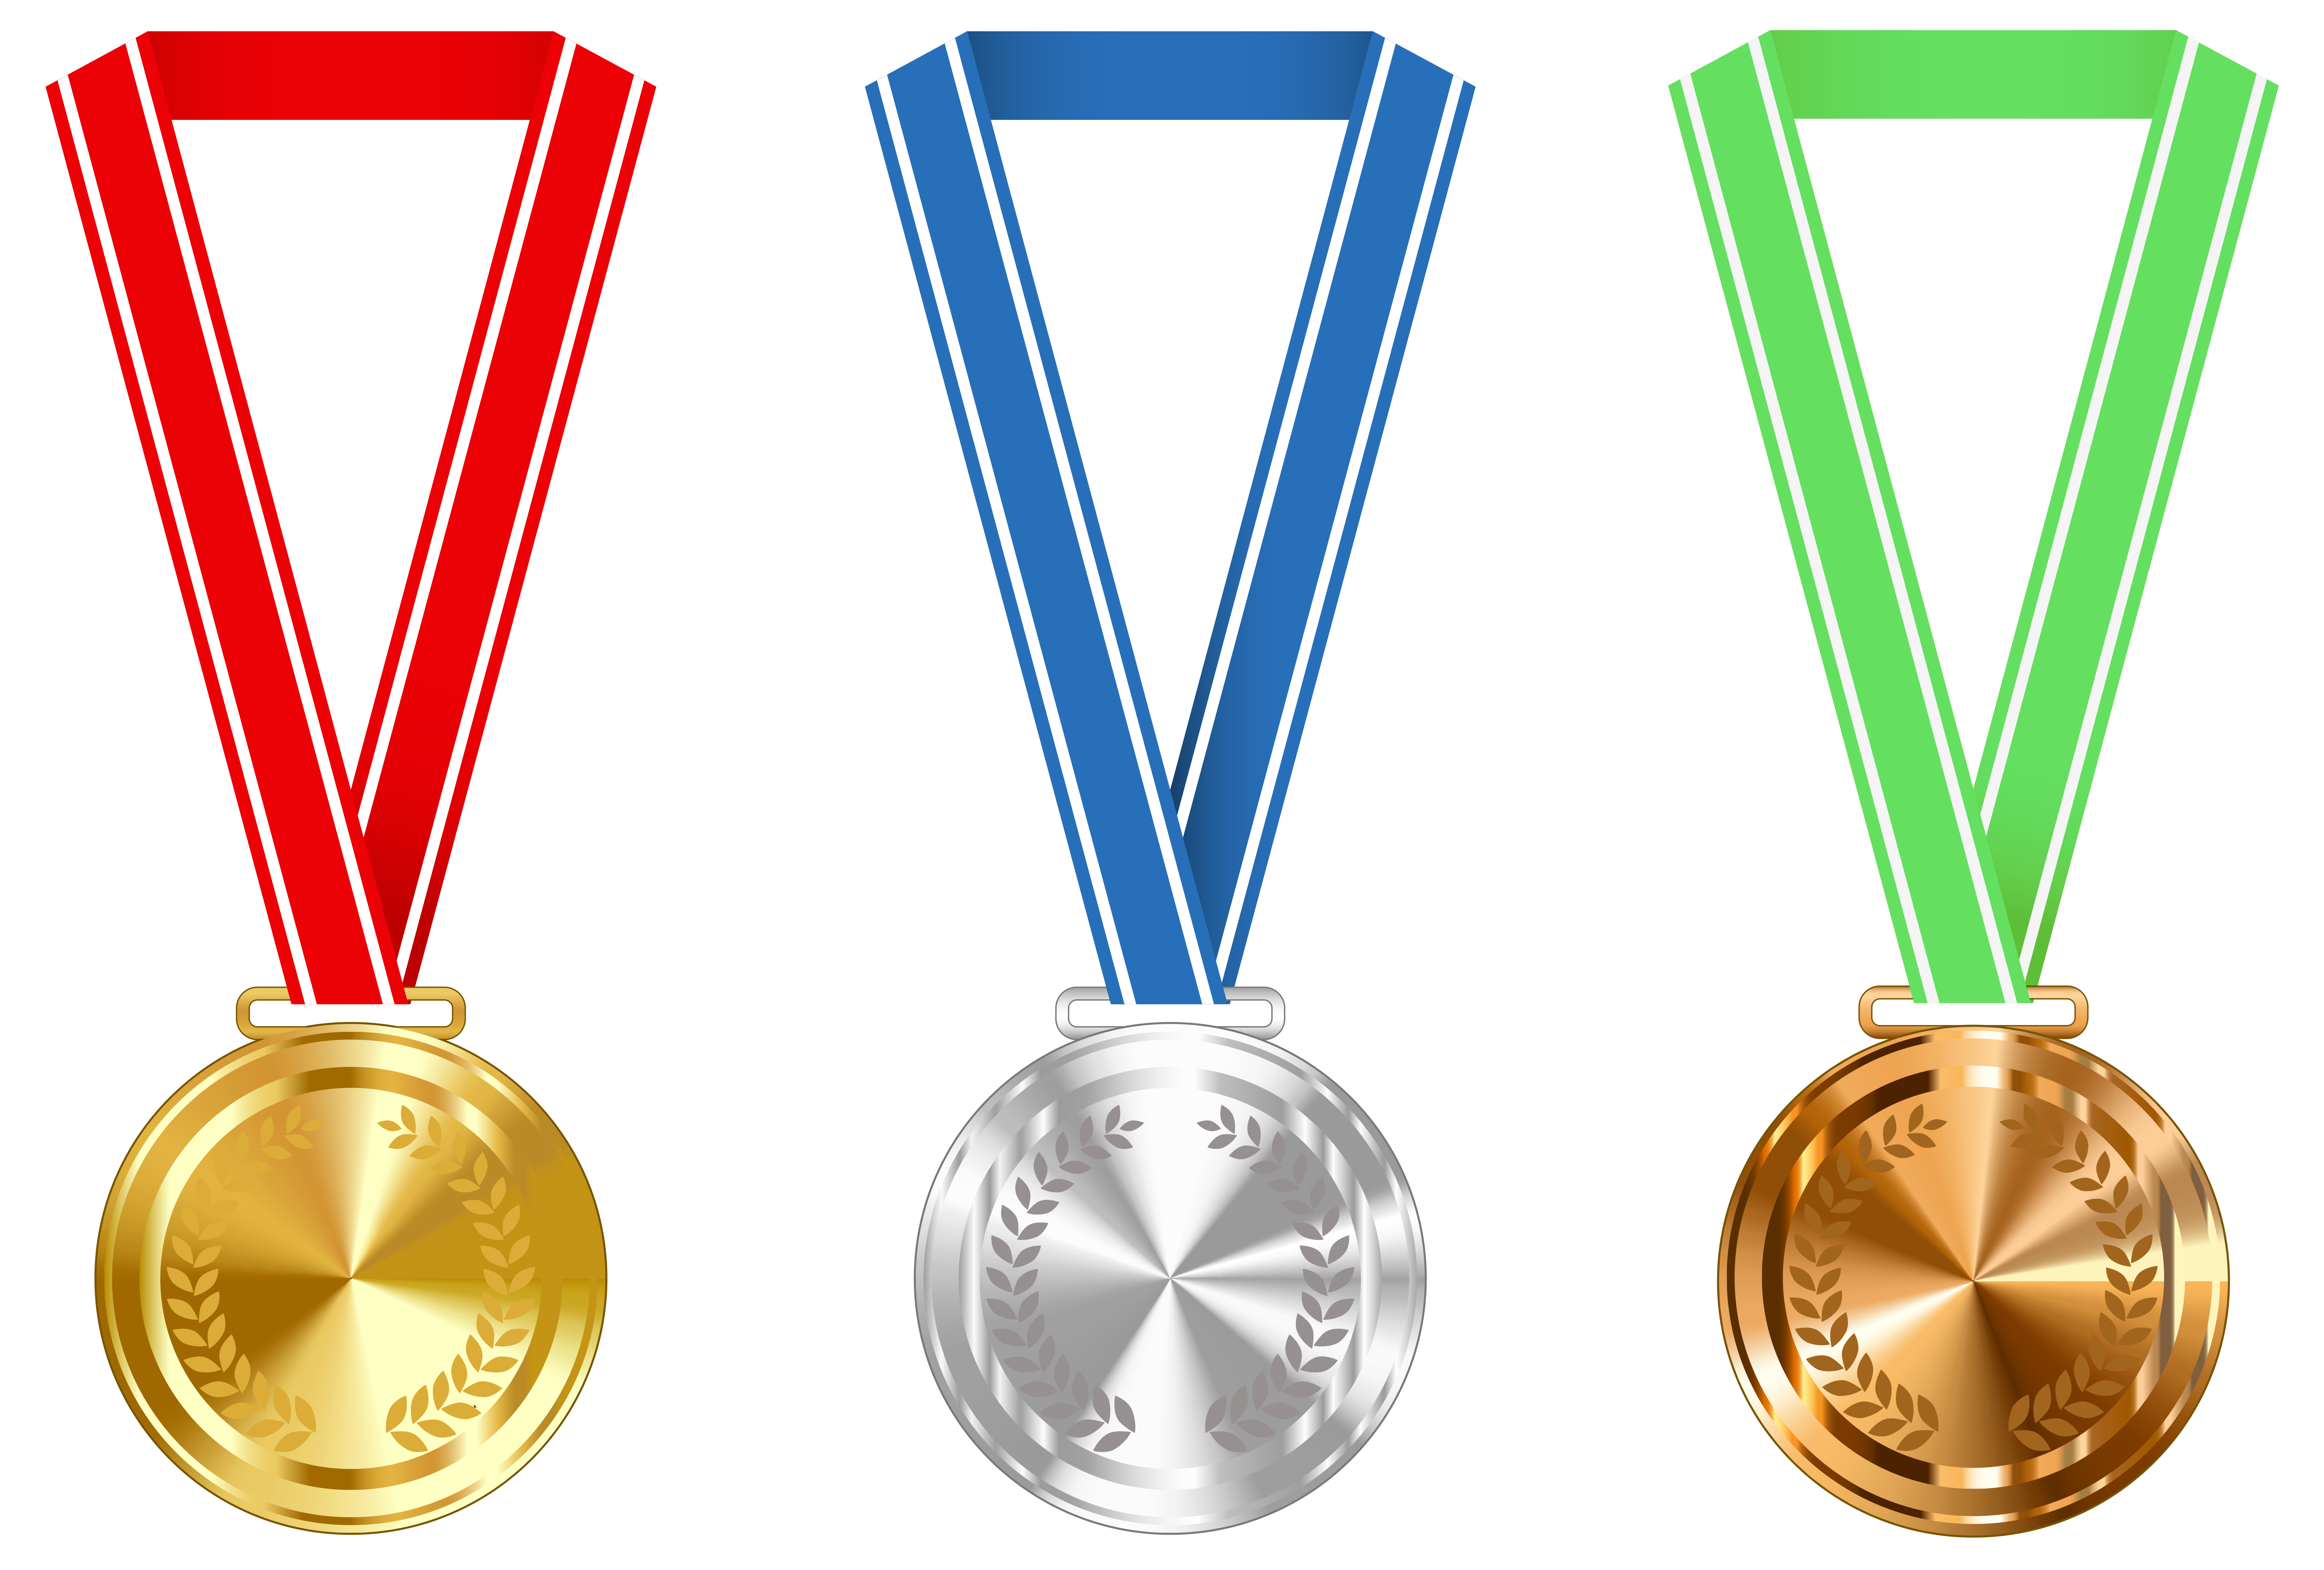 And bronze medals png. Gold clipart gold silver graphic freeuse download